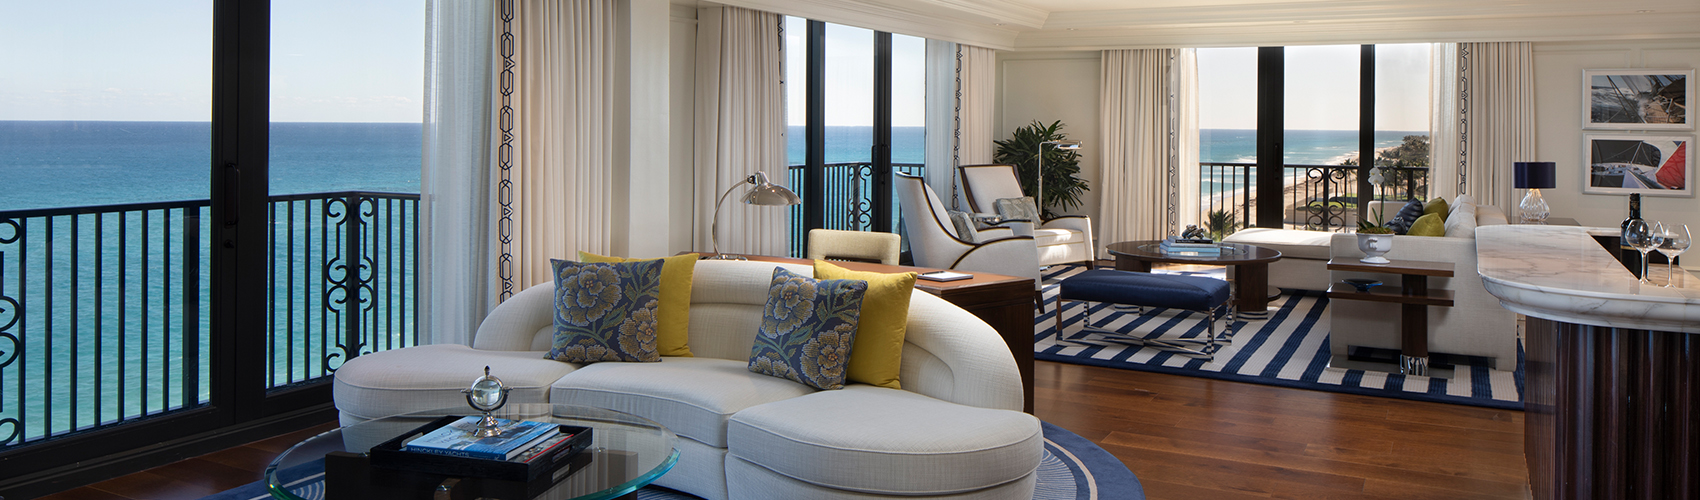 Imperial Suite with Oceanfront View Living Room